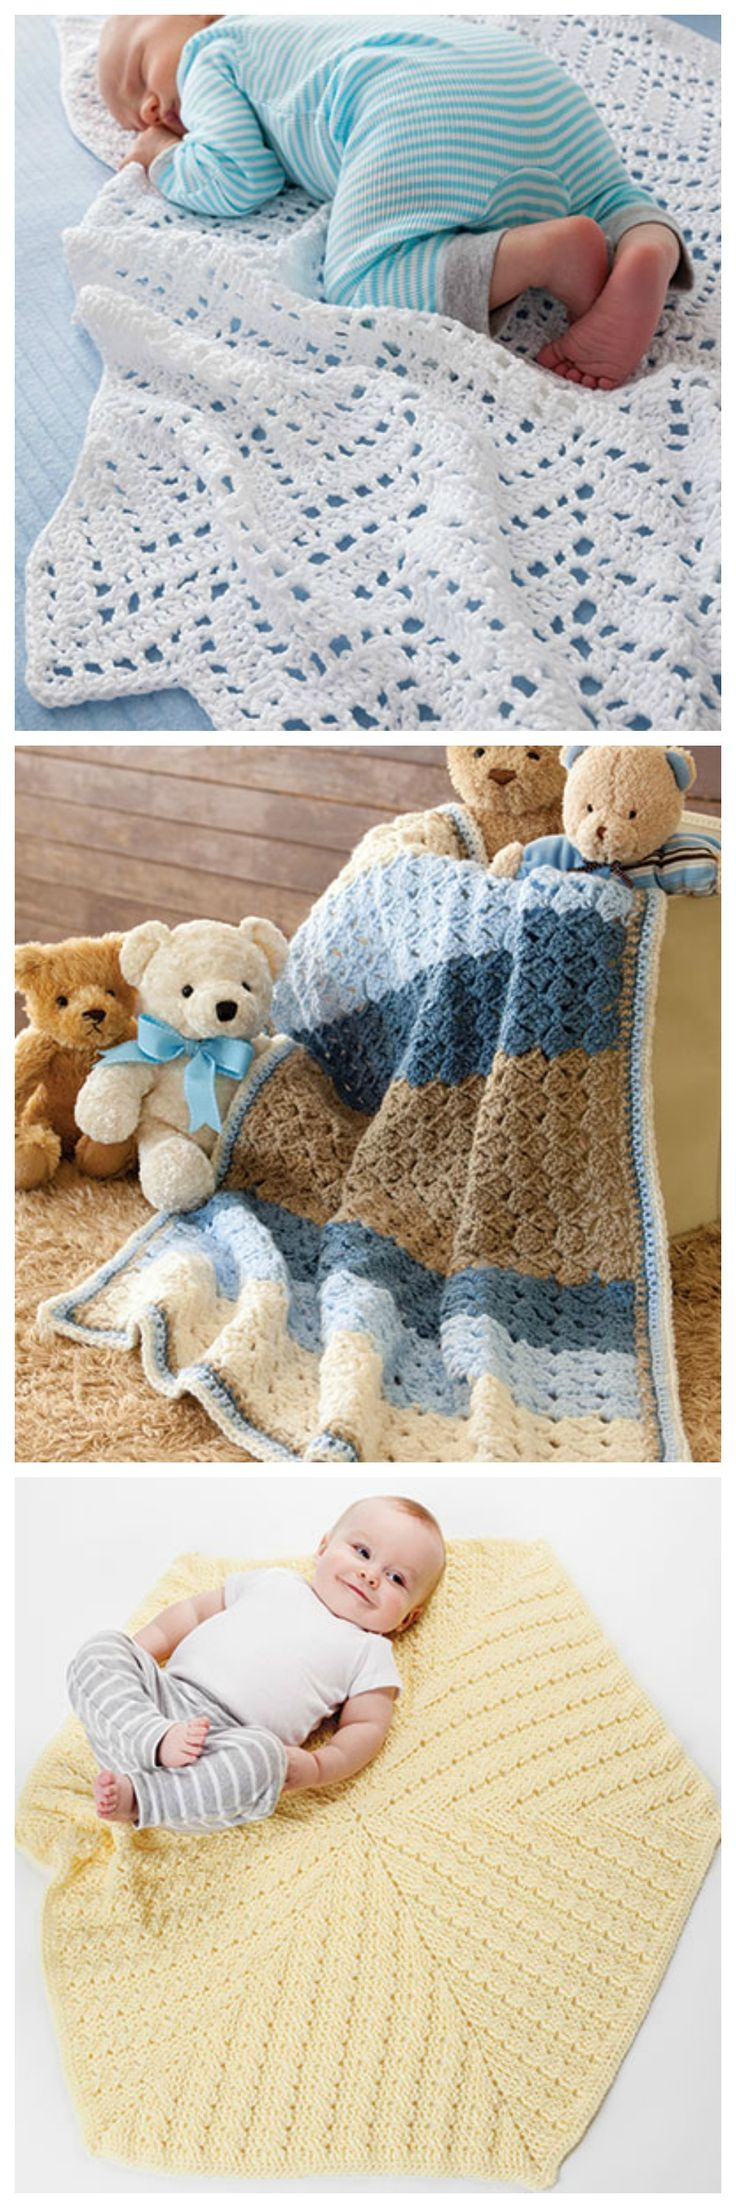 40 best crochet baby blanket patterns images on pinterest baby afghan crochet patterns from in a weekend baby afghans pattern book from annies craft bankloansurffo Images